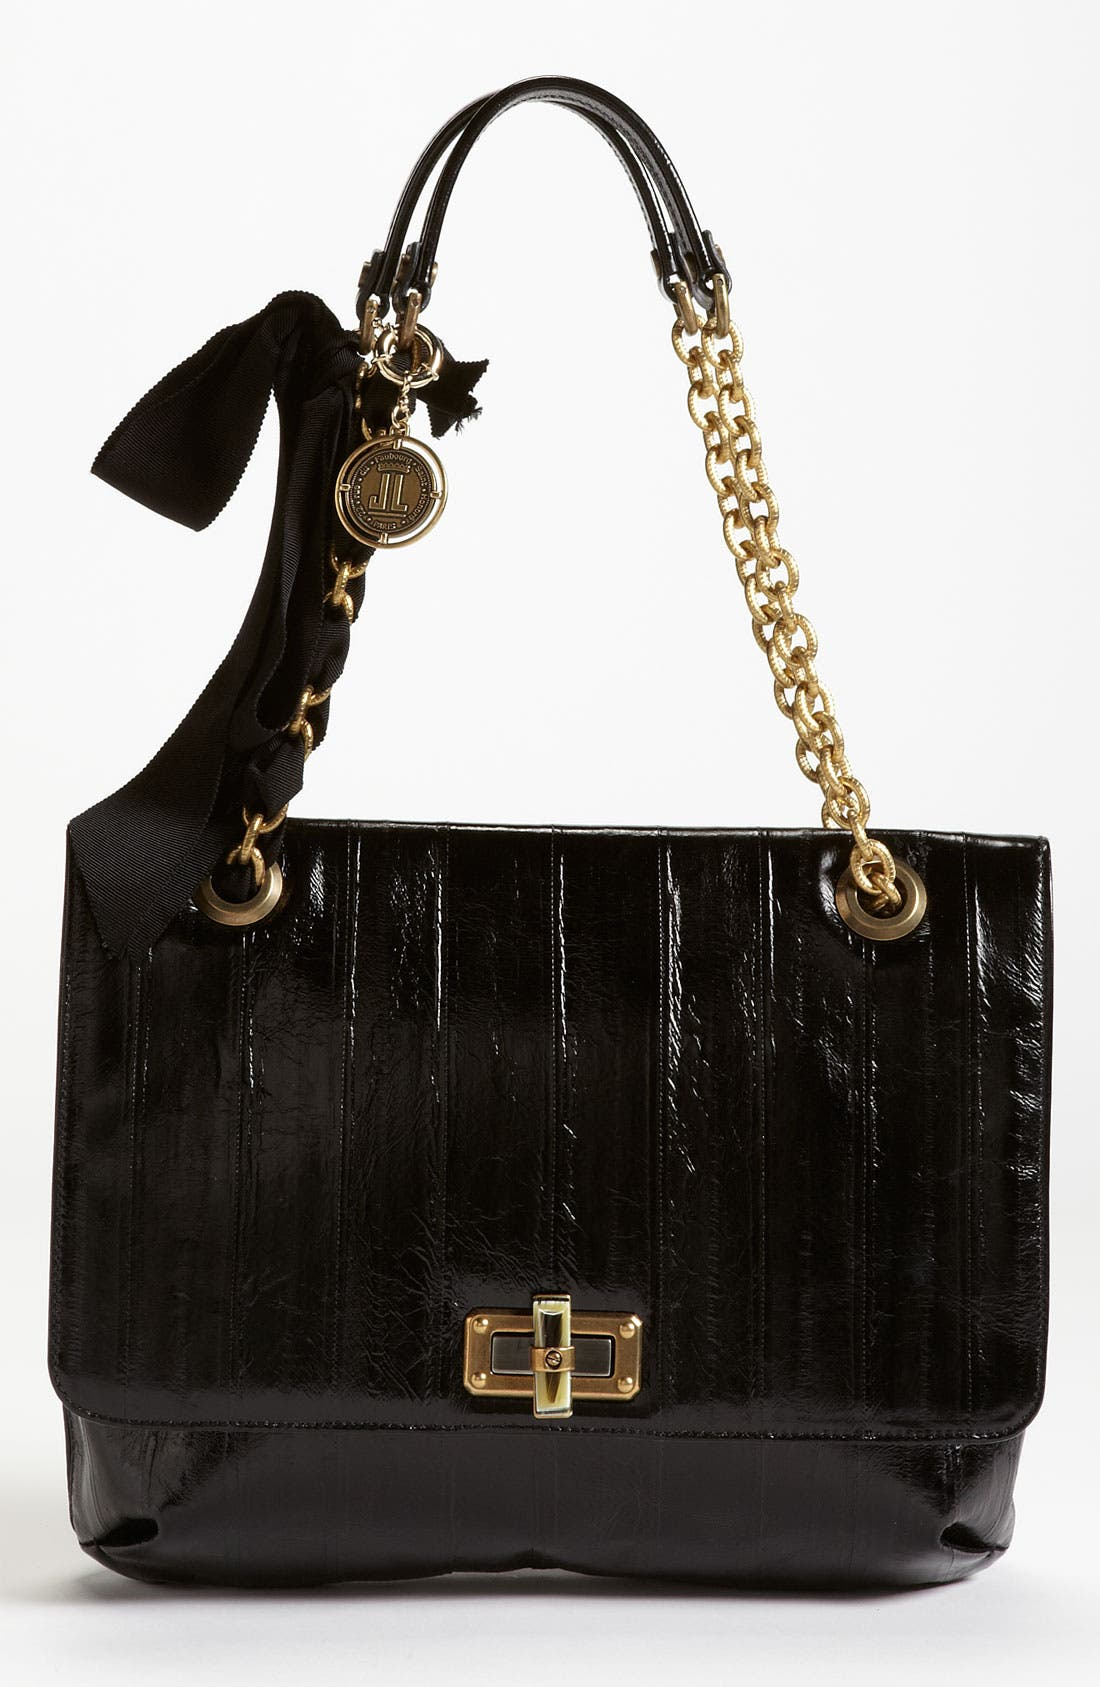 Main Image - Lanvin 'Happy' Glazed Leather Shoulder Bag